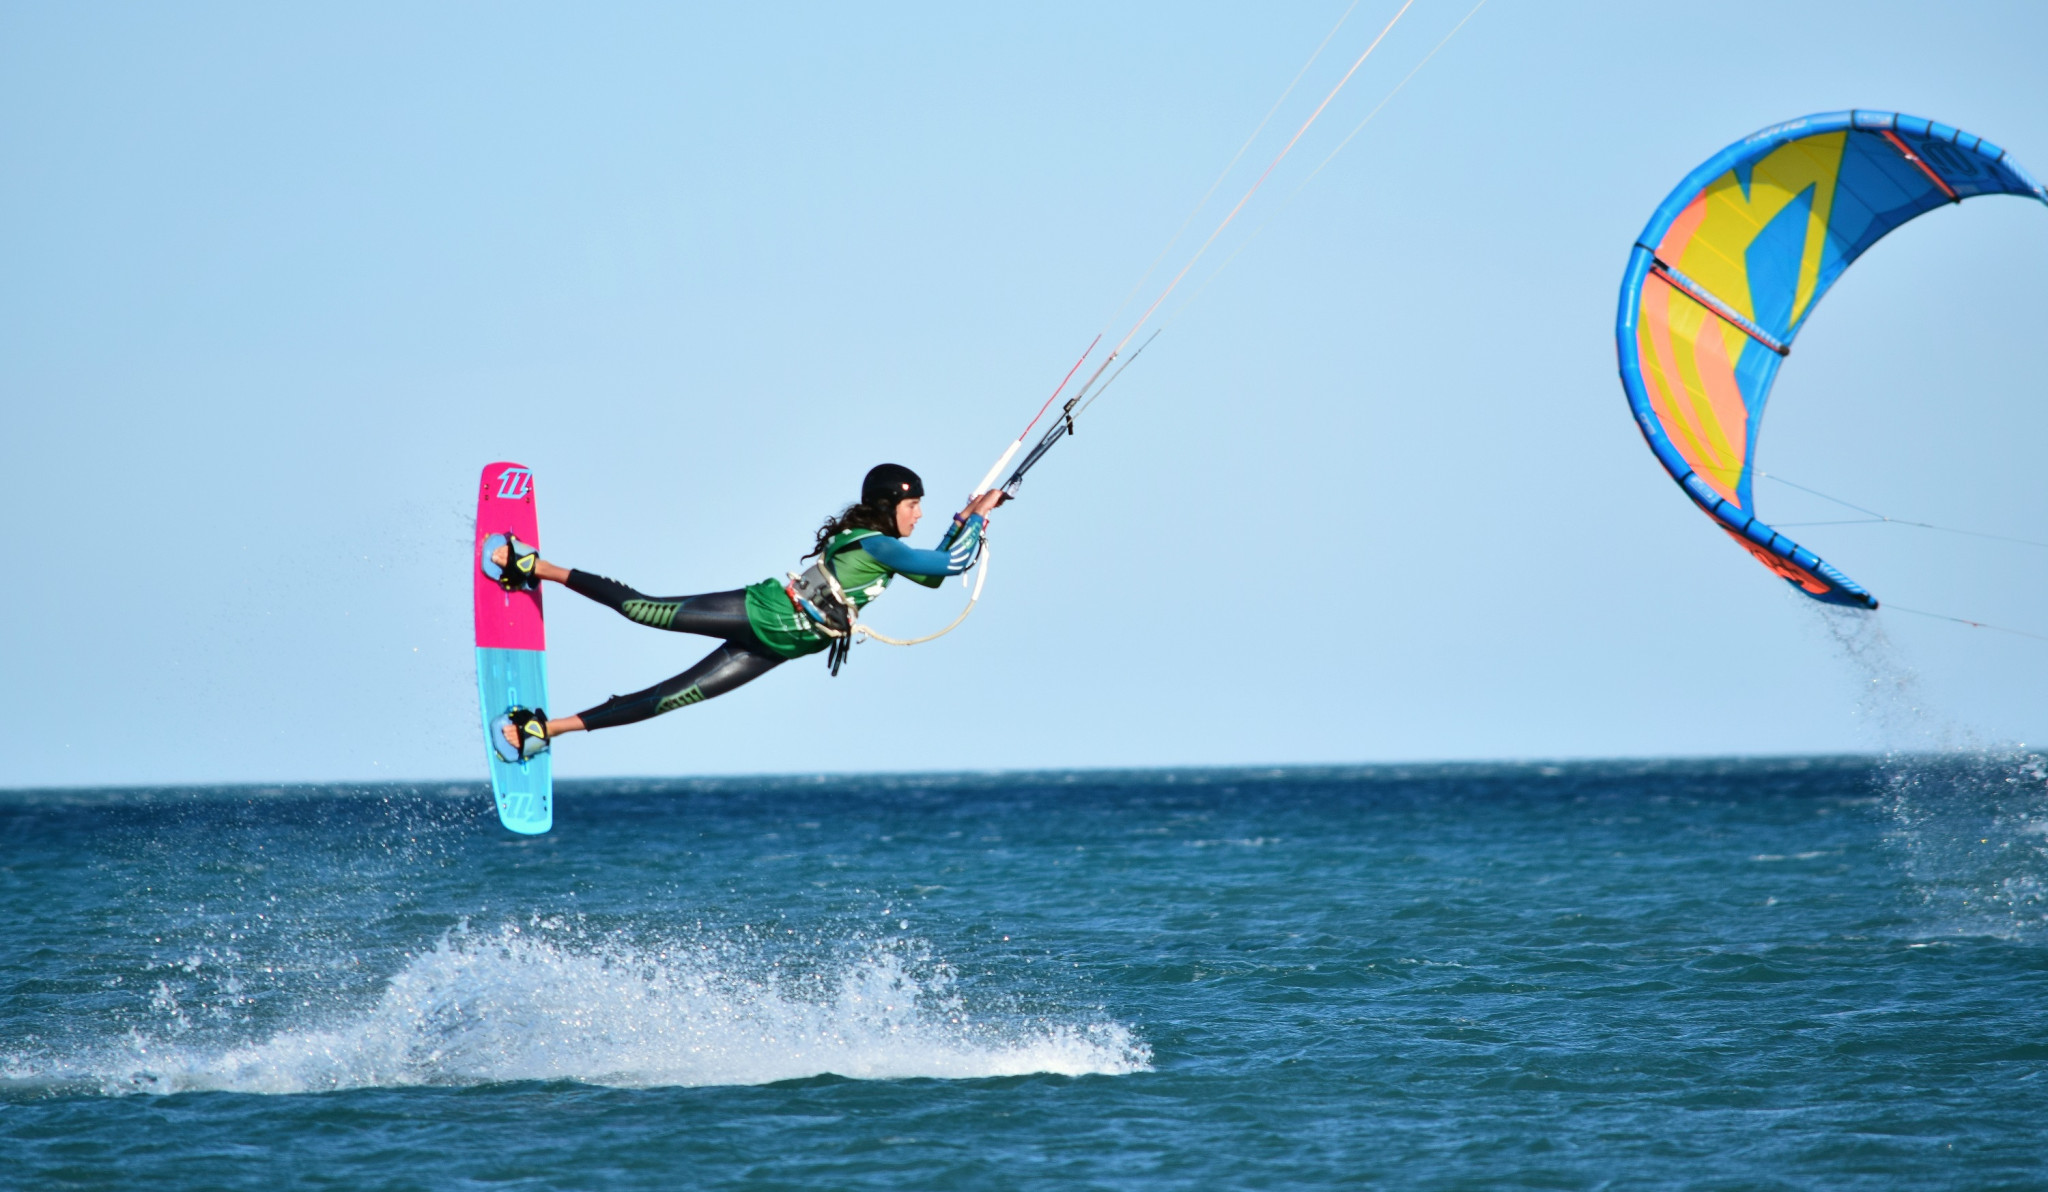 Kiteboarding body call on IOC to interfere in World Sailing governance row